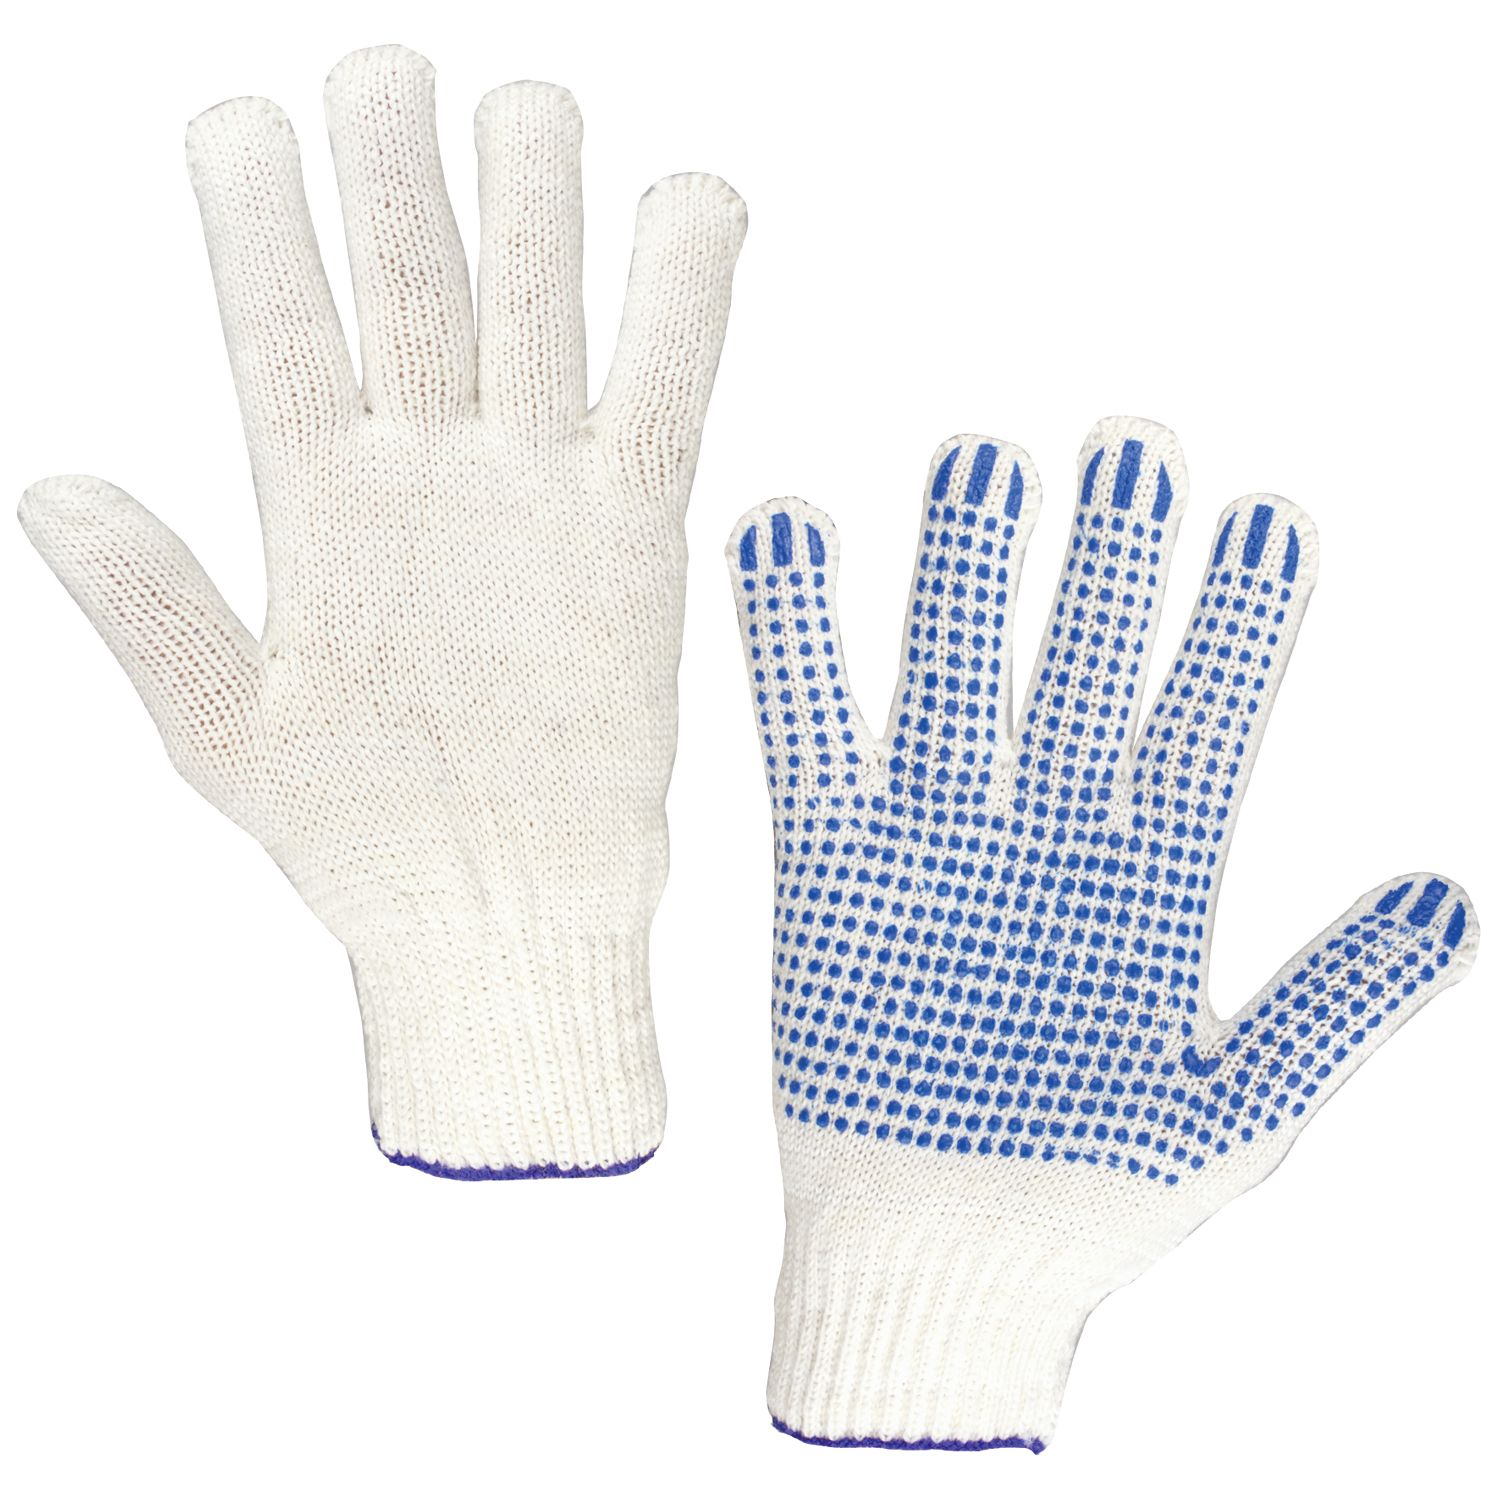 LIME / Cotton gloves STANDARD, SET of 5 PAIRS, 7.5 class, 46-48 g, 166 tex, PVC point, WHITE